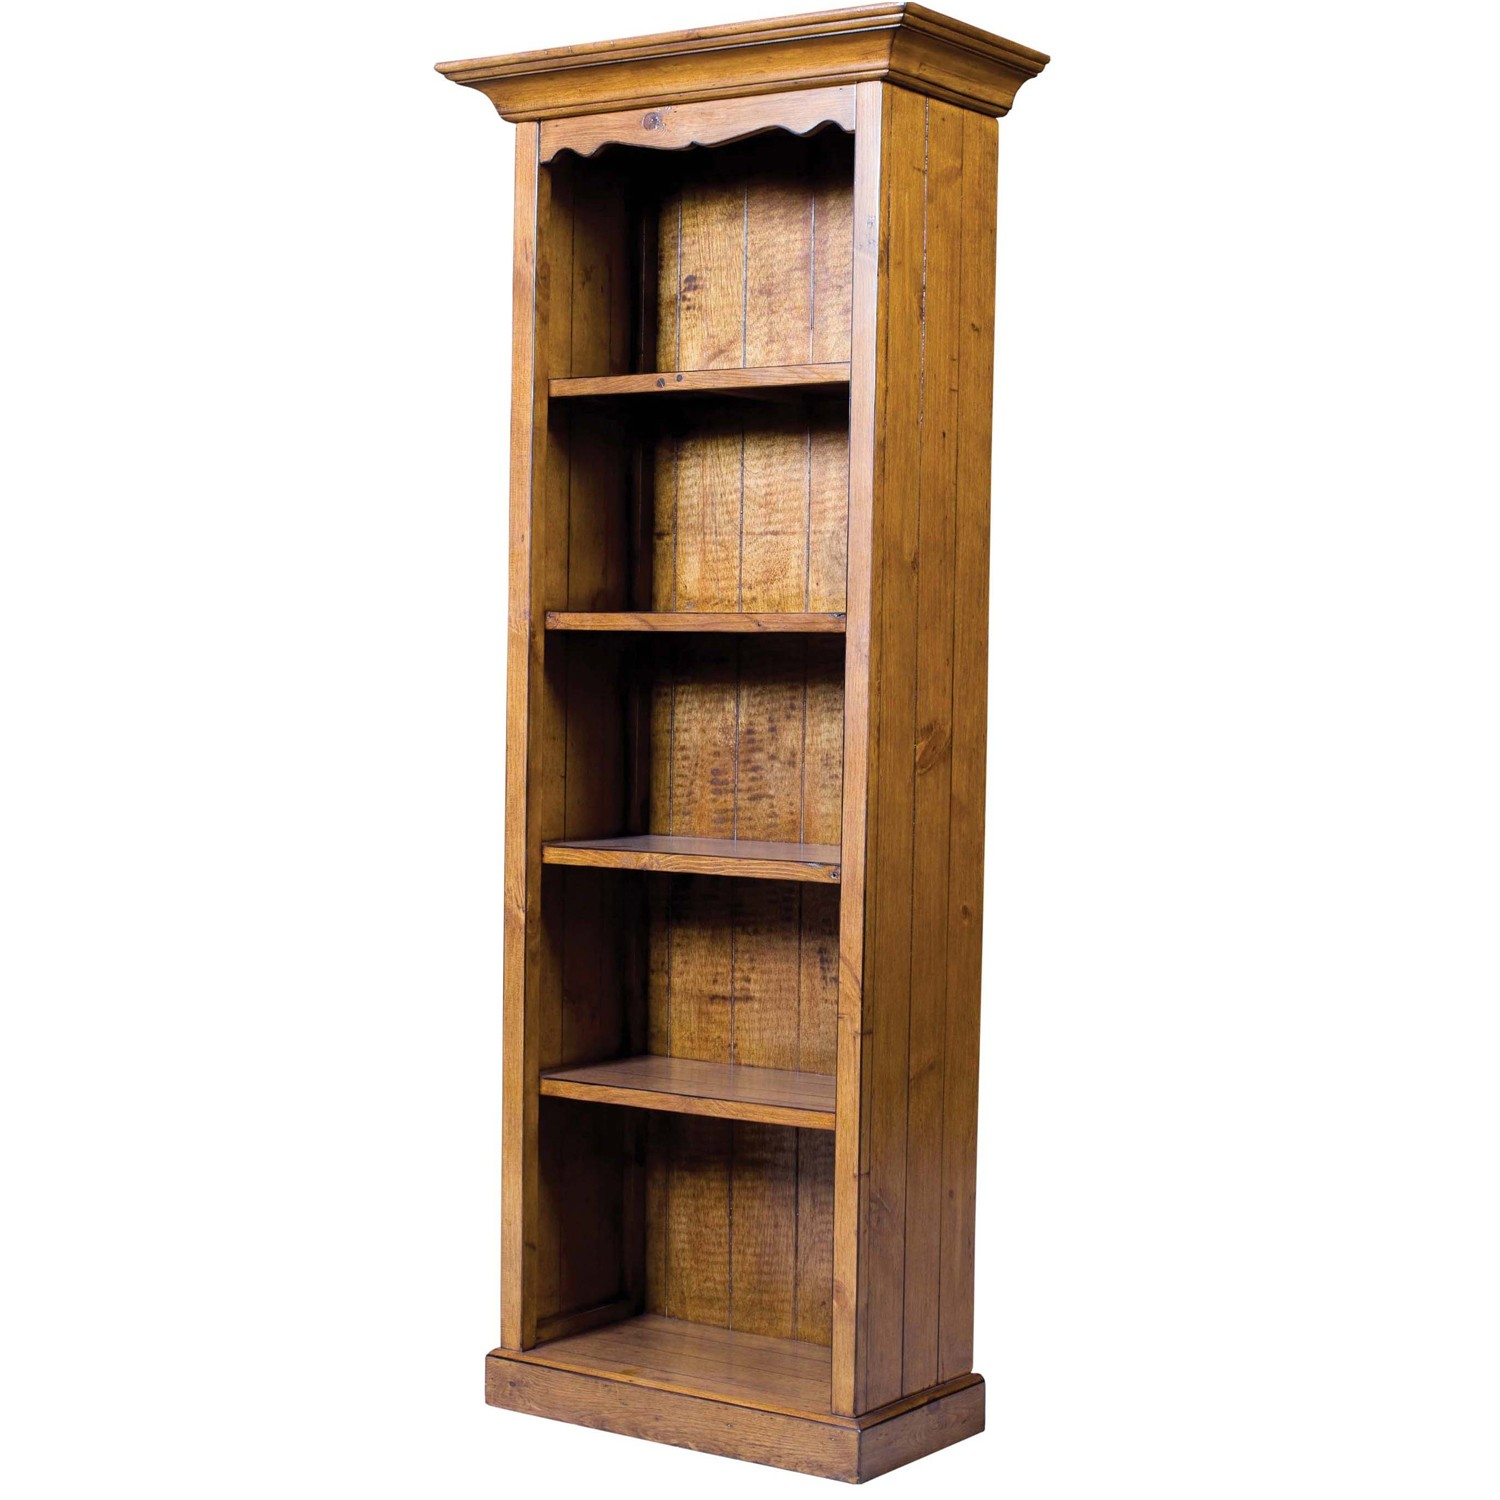 cd space storage finish to furniture shelves take in bookcase small dvd with ample office waverly light dp designed home oak adjustable